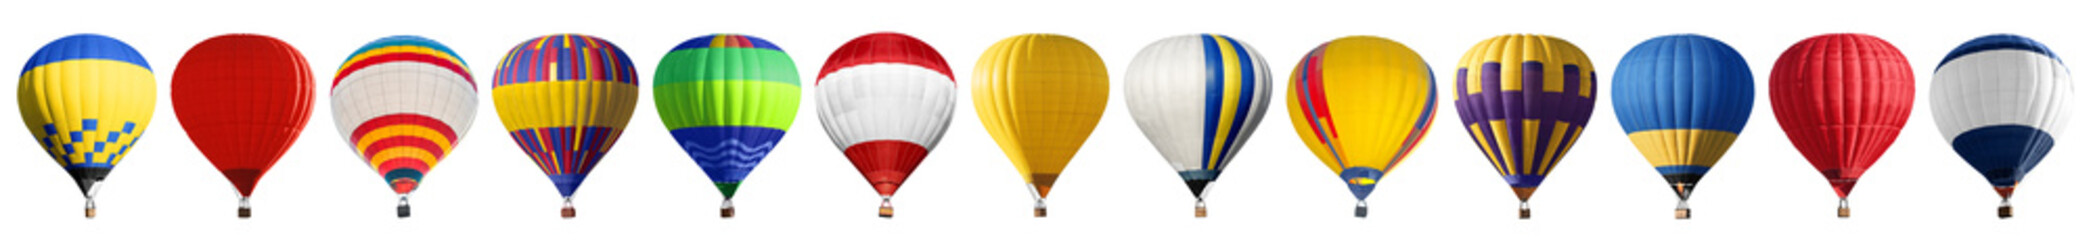 Wall Murals Balloon Set of bright colorful hot air balloons on white background